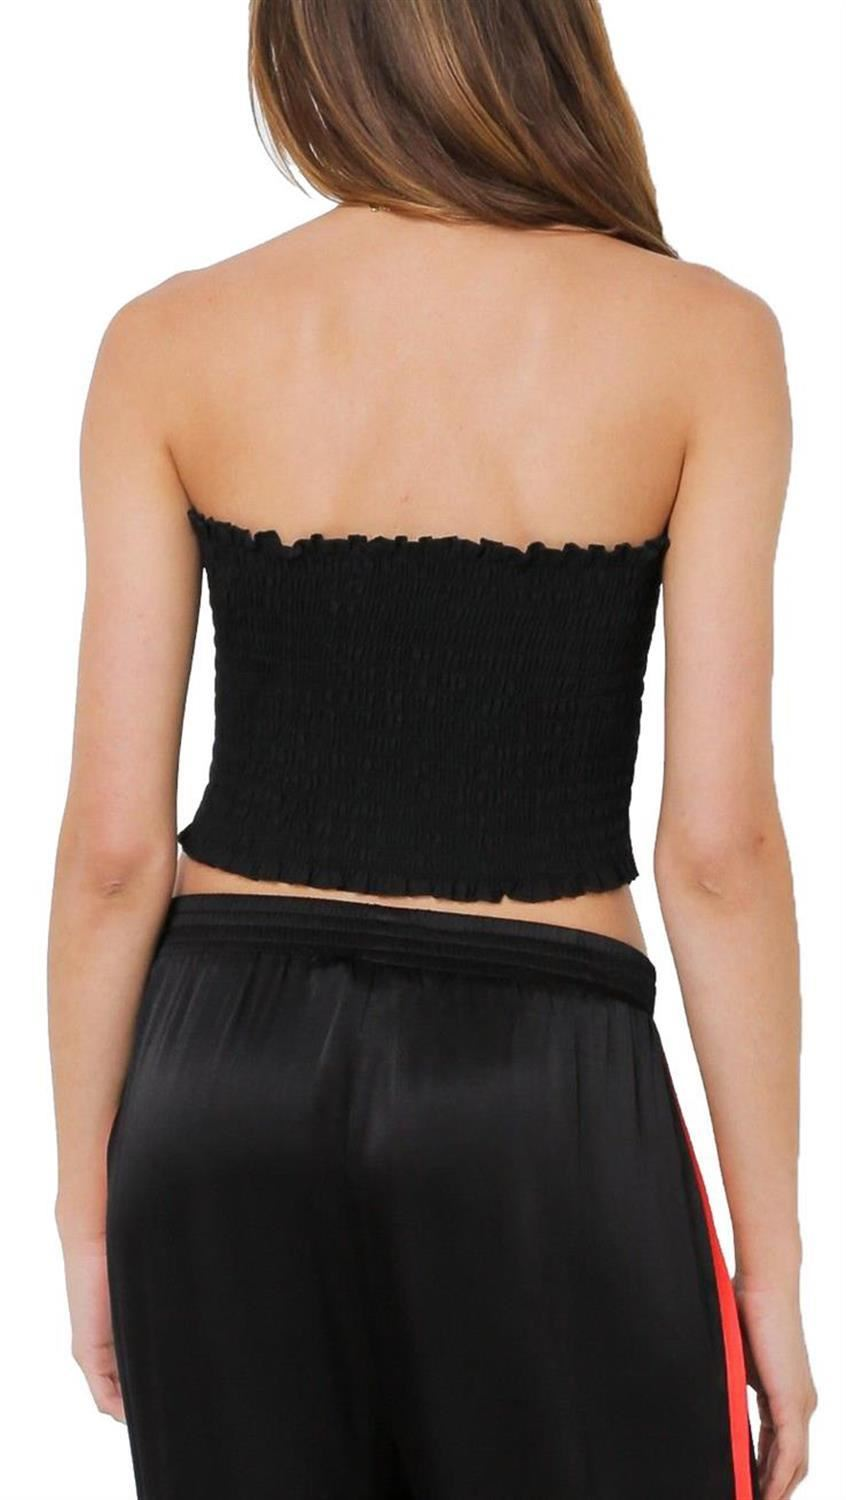 Womens Sheering Boob Tube Gather Strapless Bandeau Shirred Crop Tops 8-14